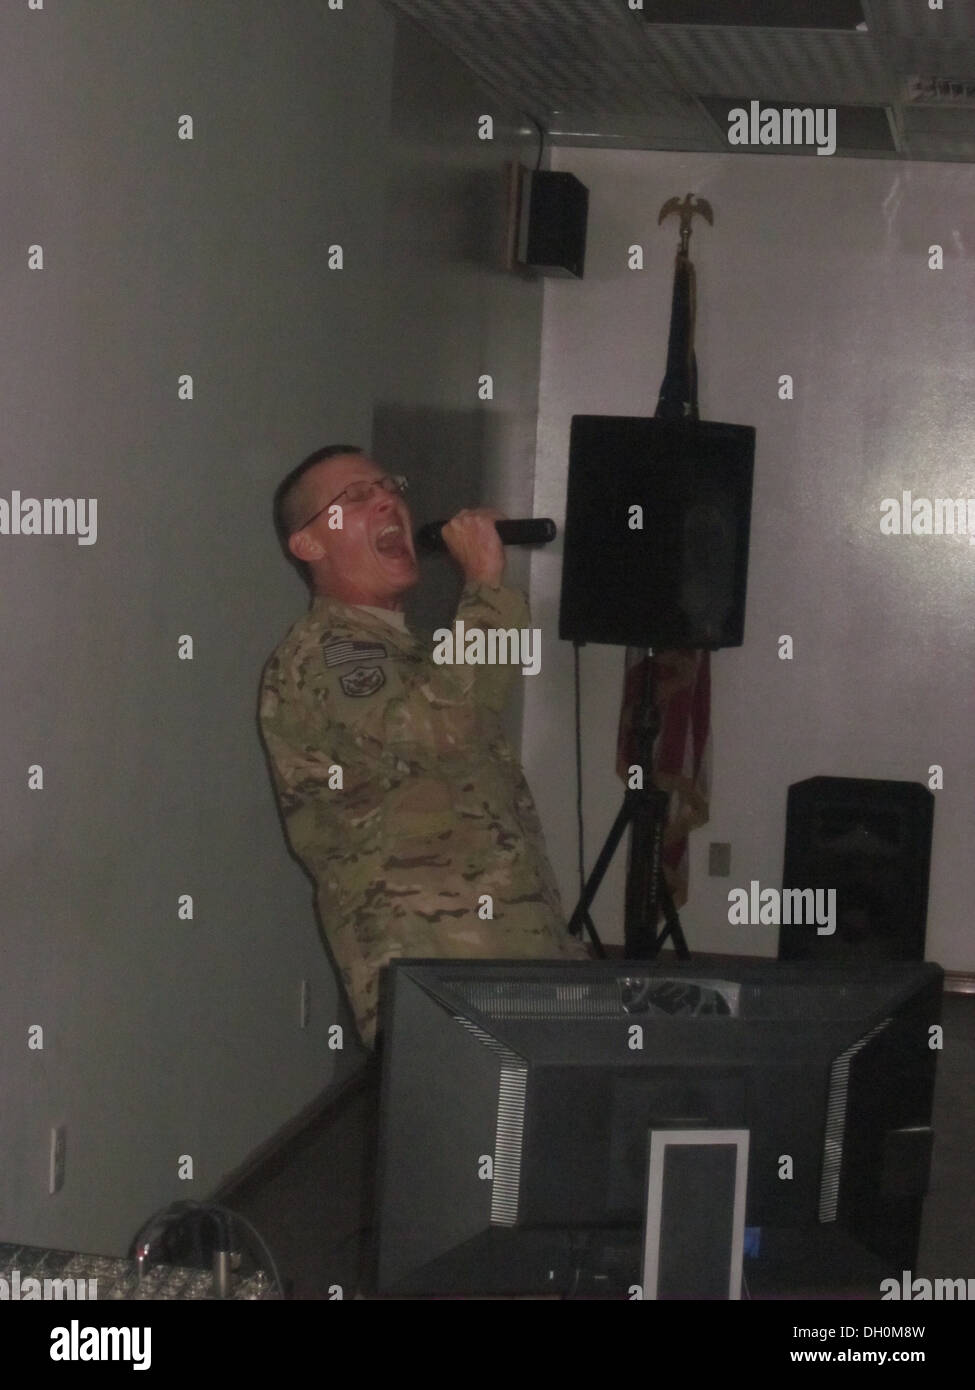 More than 30 people attended the weekly Karaoke singing event Oct. 25, 2013 at the Vulture's Nest recreation center on Bagram Air Field, Afghanistan. - Stock Image